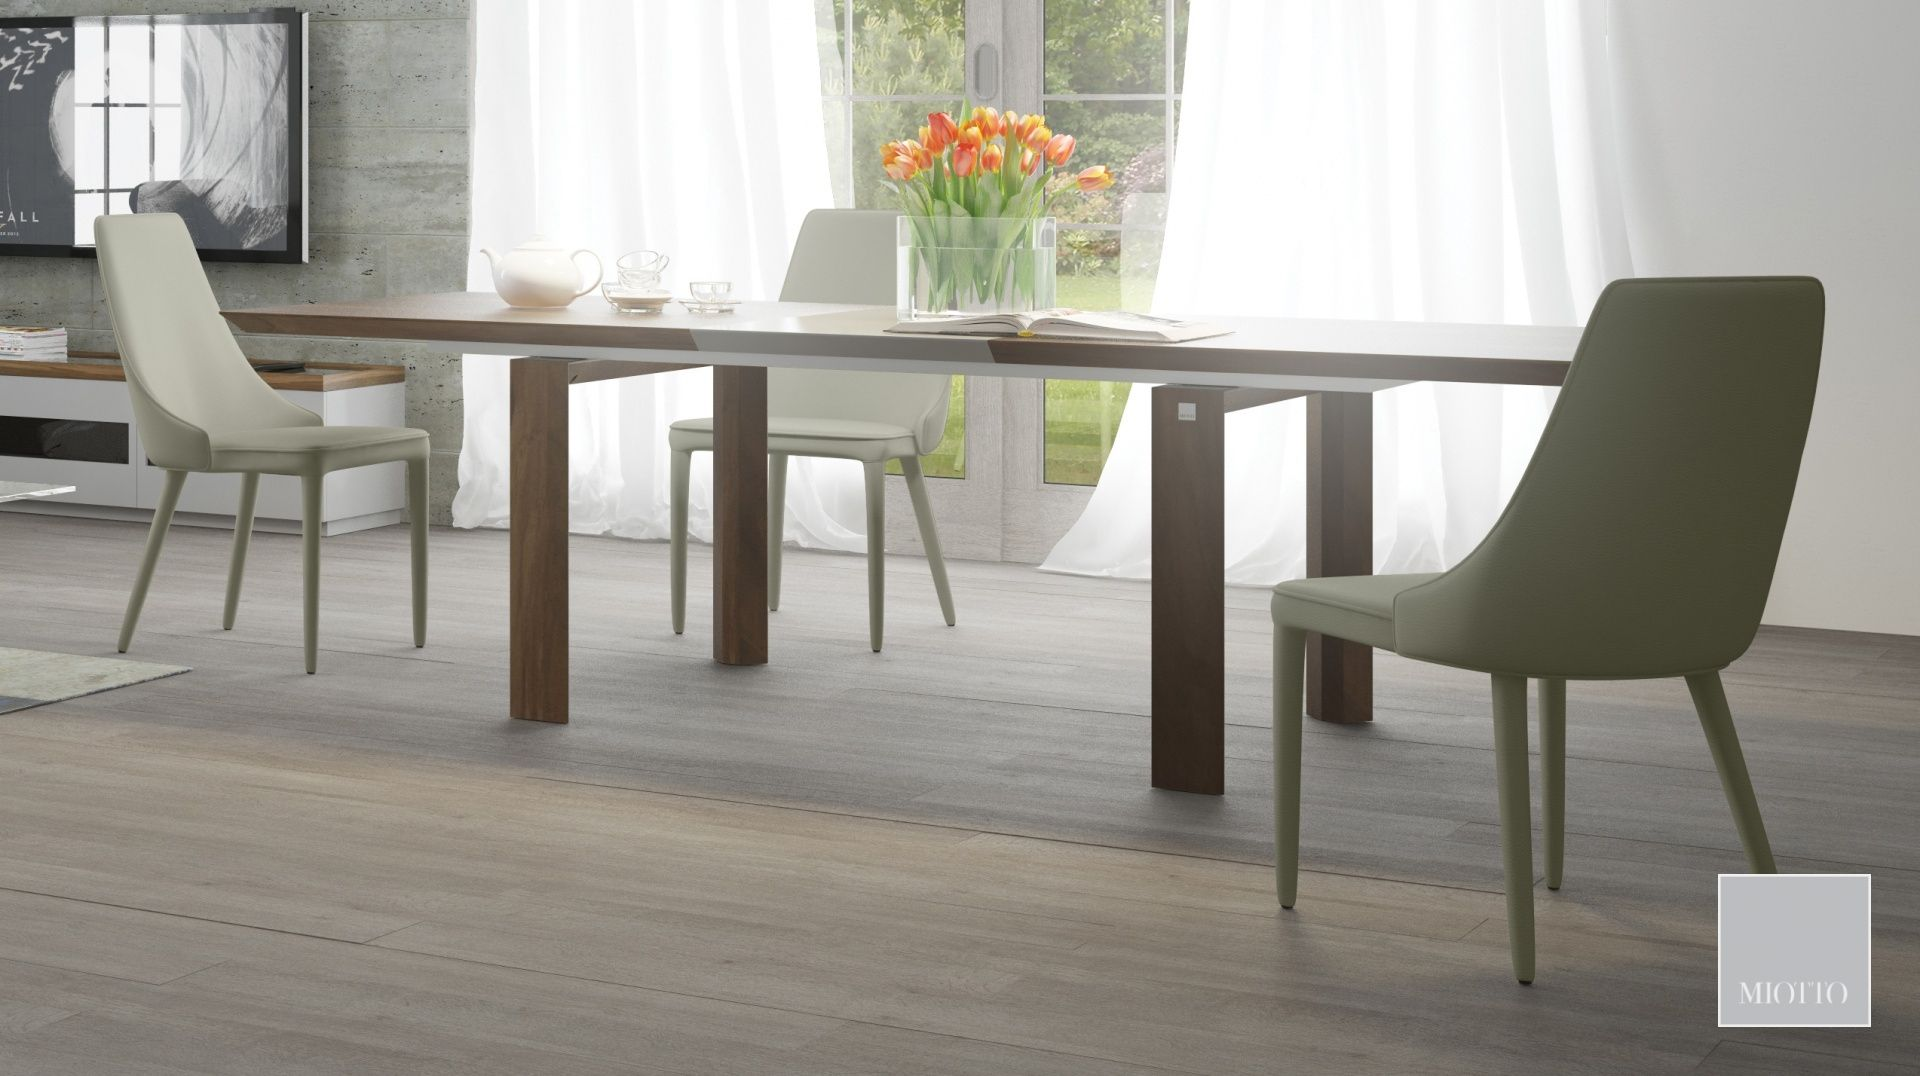 miotto_milvia walnut_0003 MIOTTO design dining table chairs_w